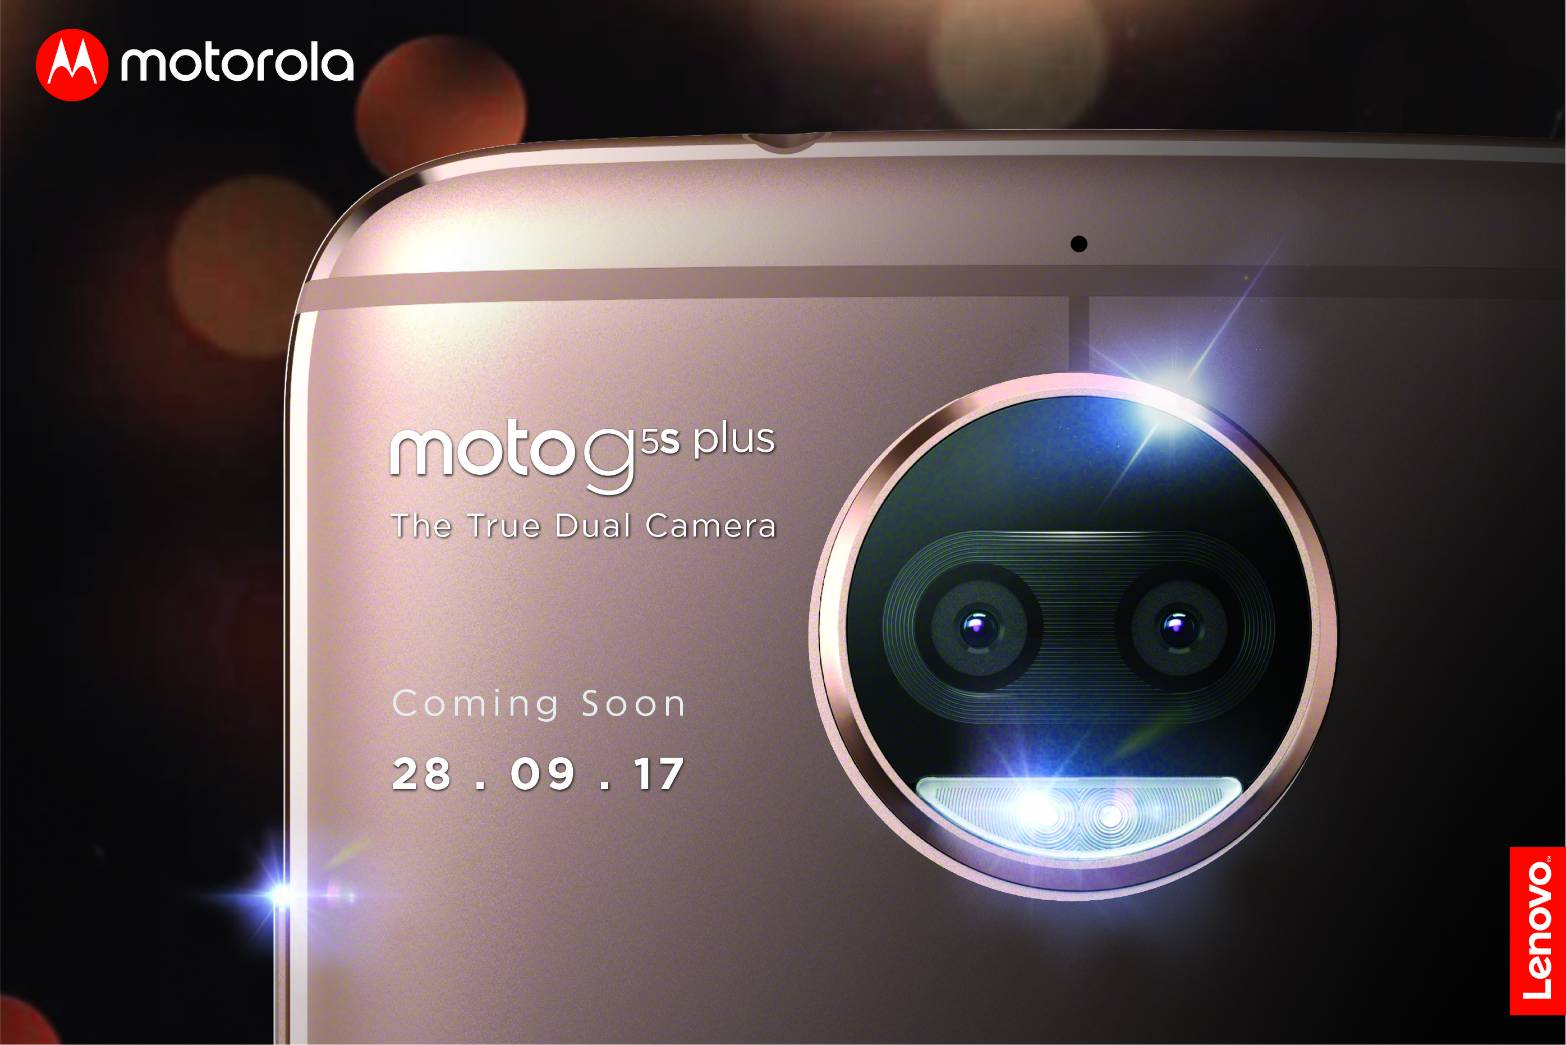 Pre-Announcement_Moto G5s Plus_02